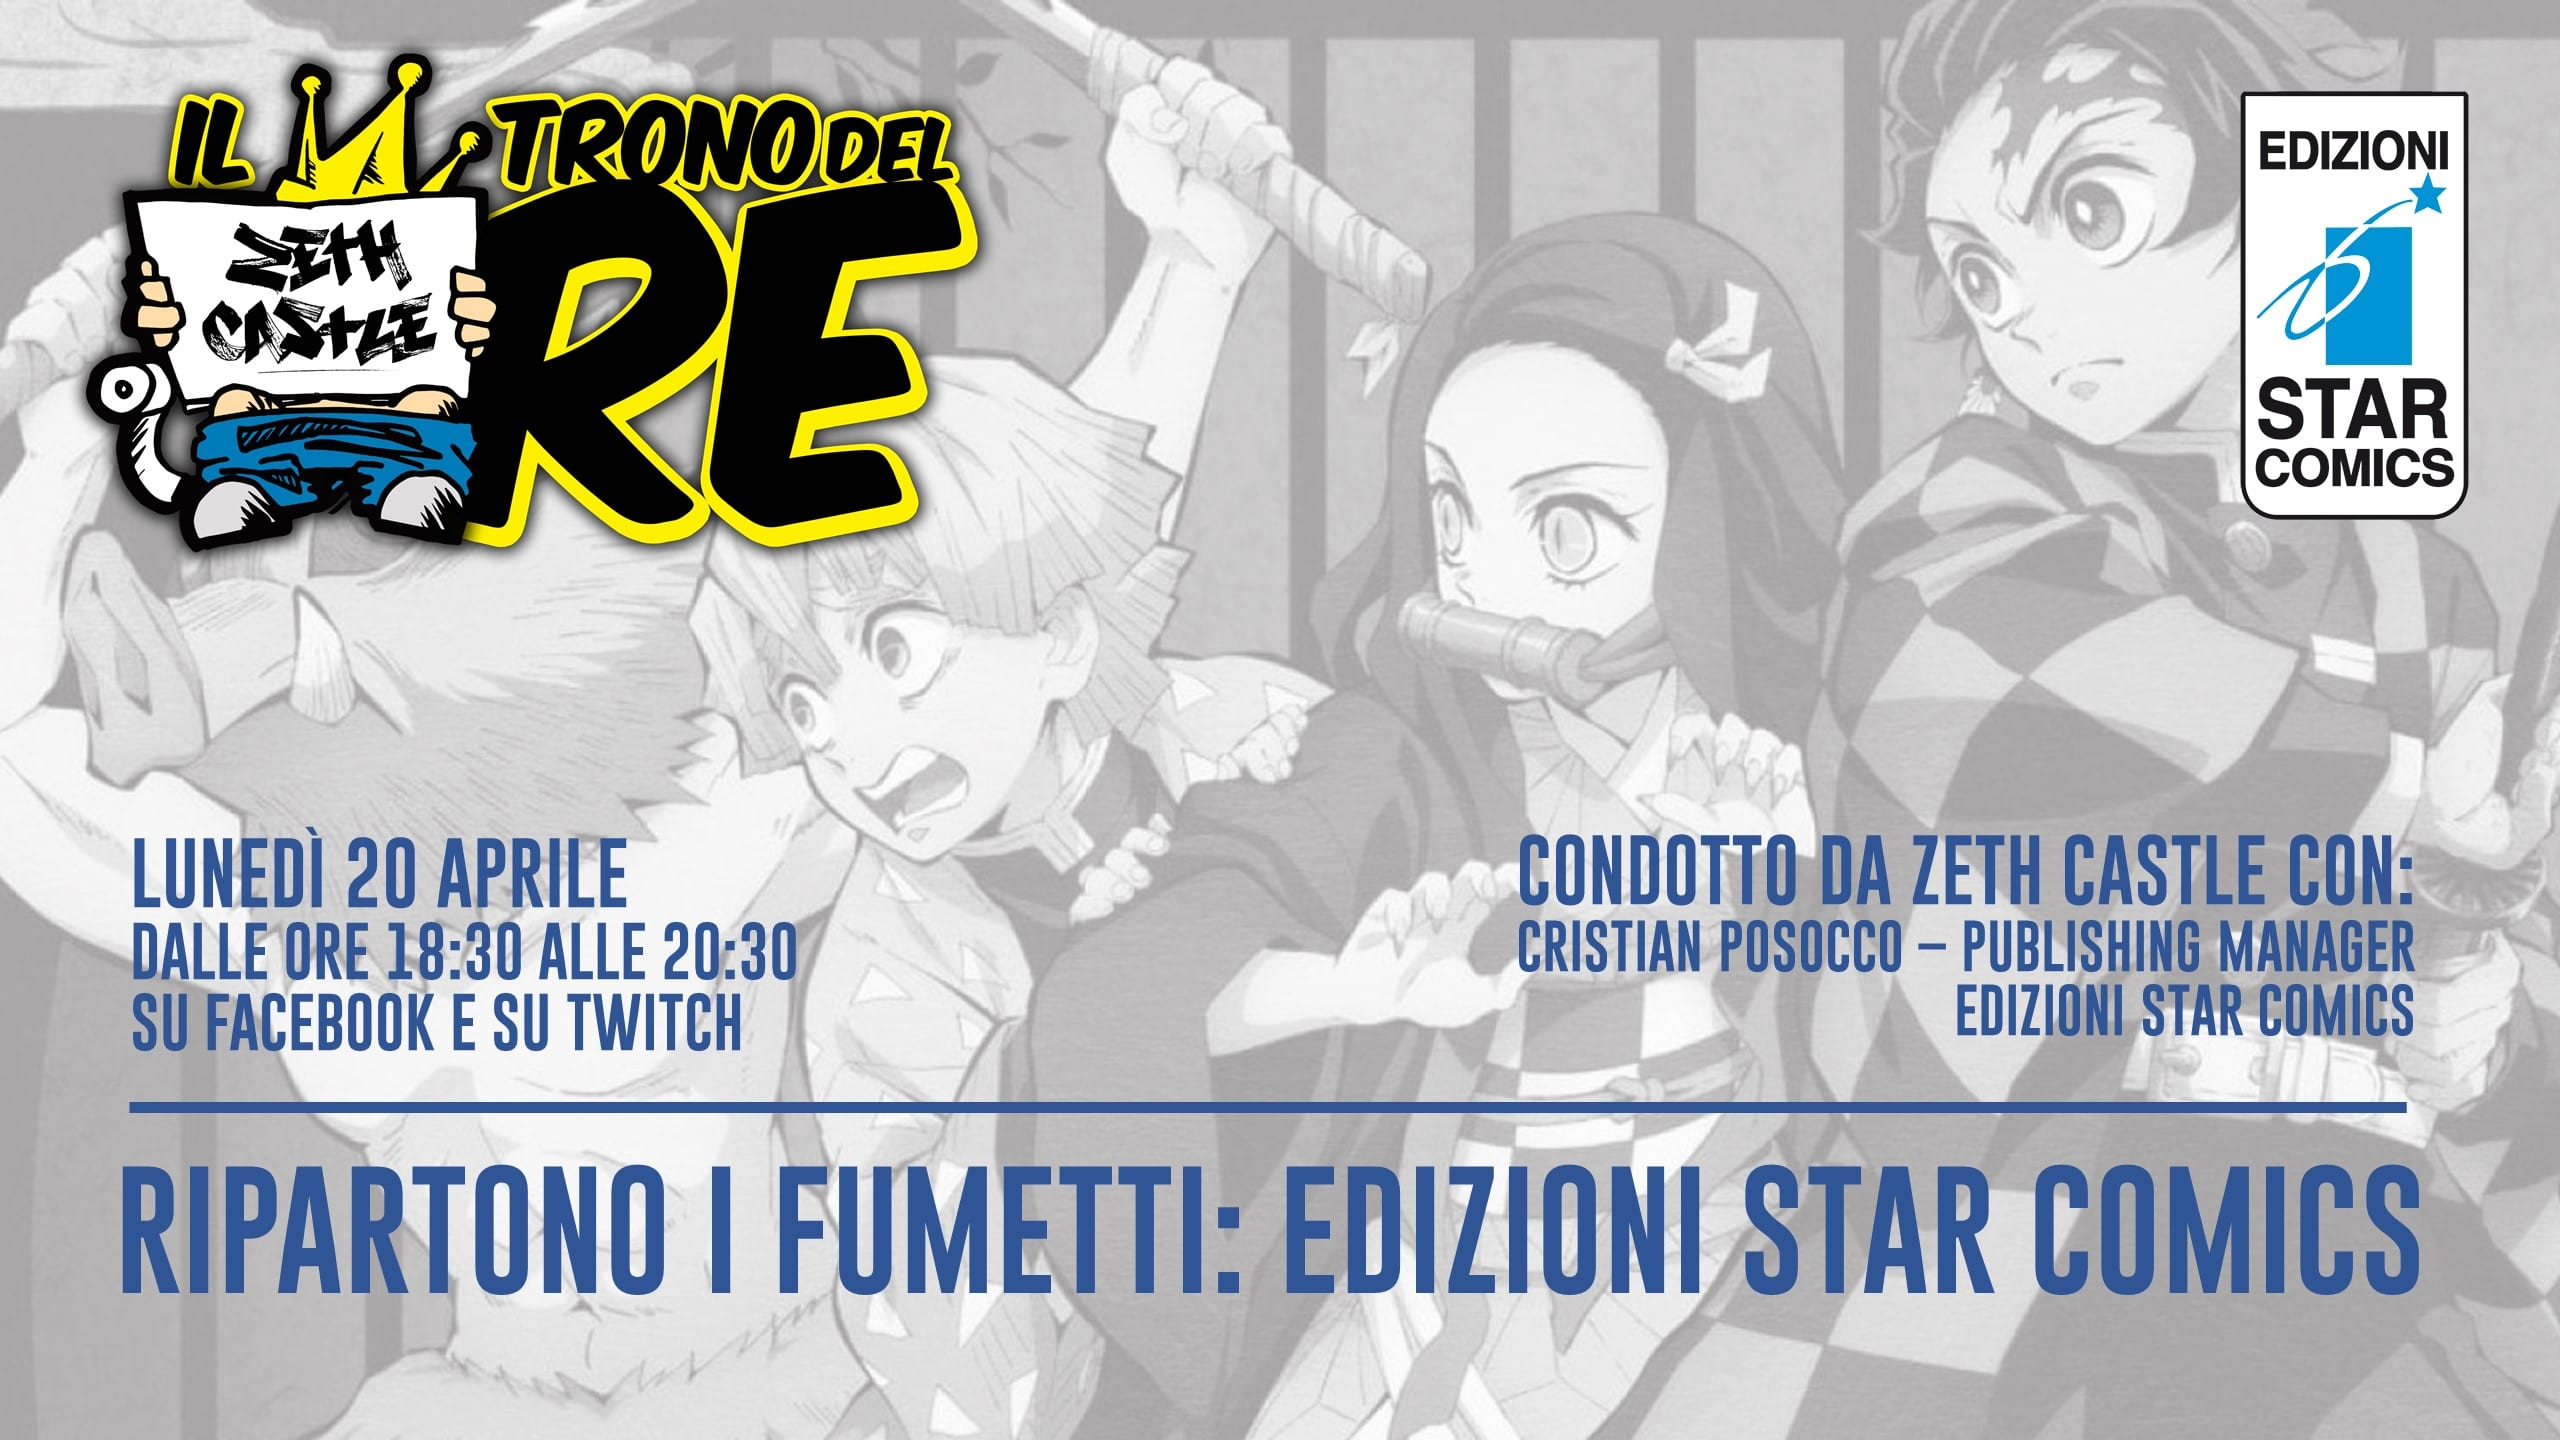 Il Trono del Re Star Comics